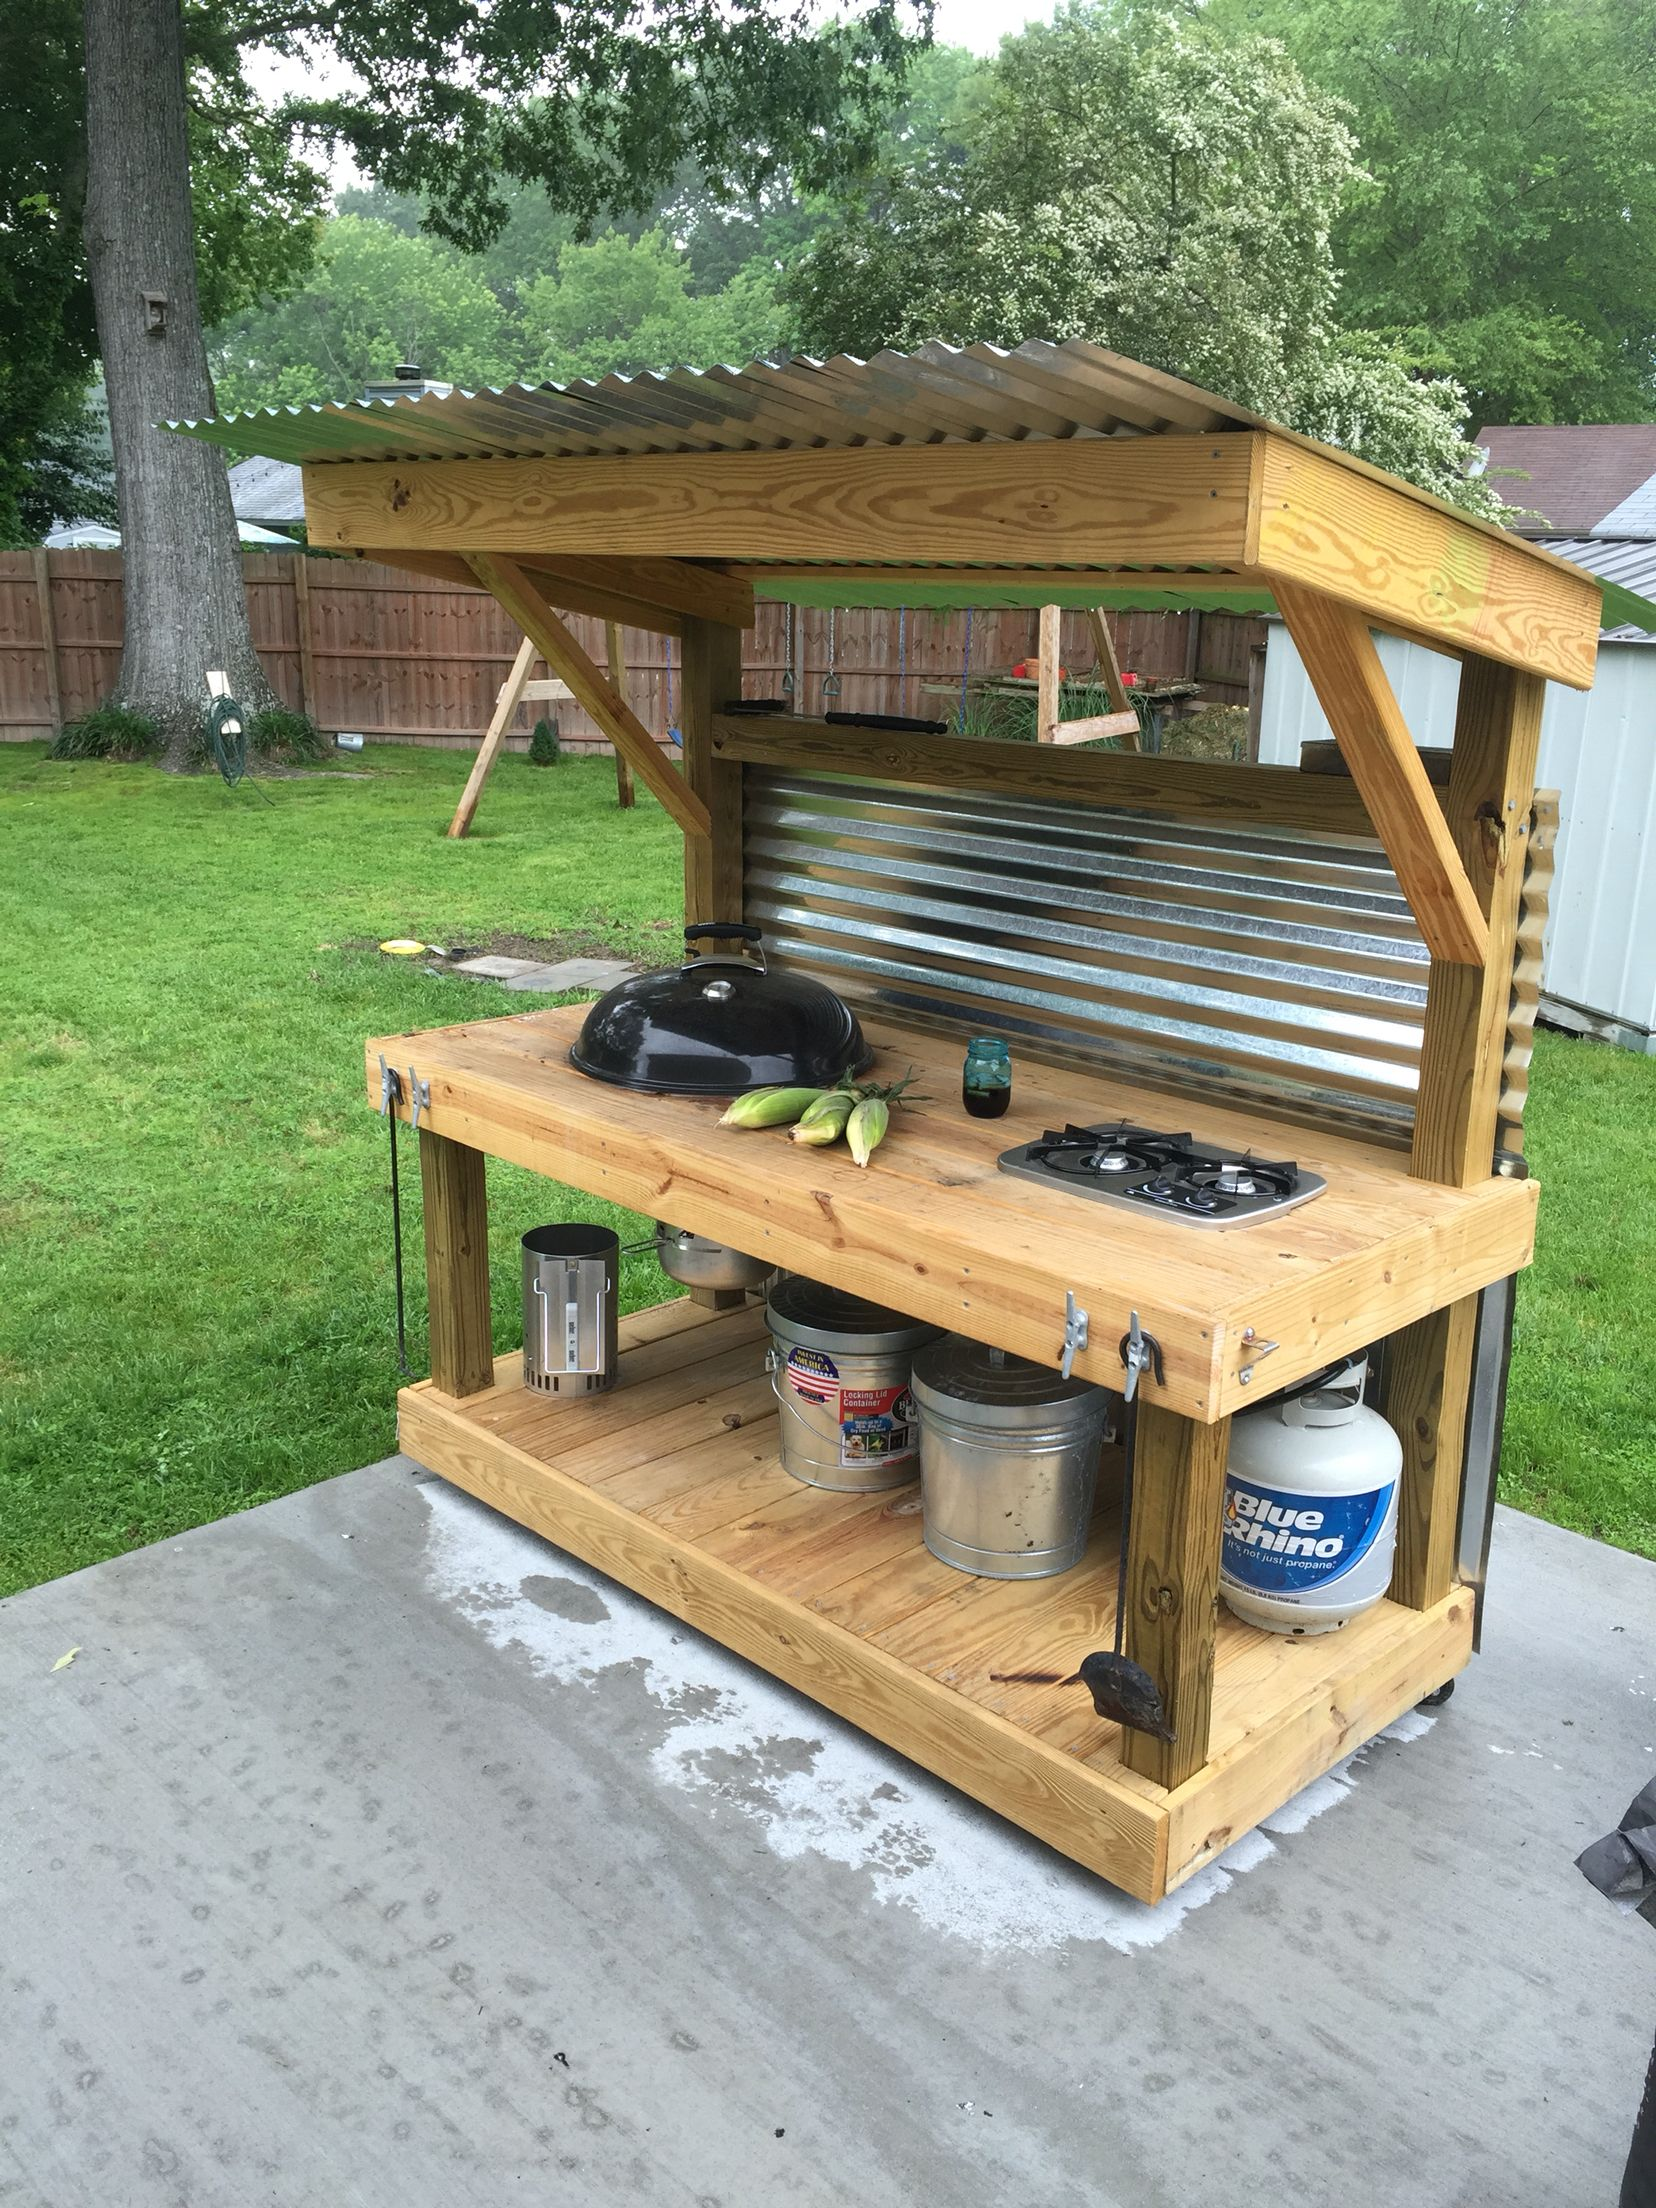 Weber Kettle Homemade Cart Table - Bbq Brethren Forums